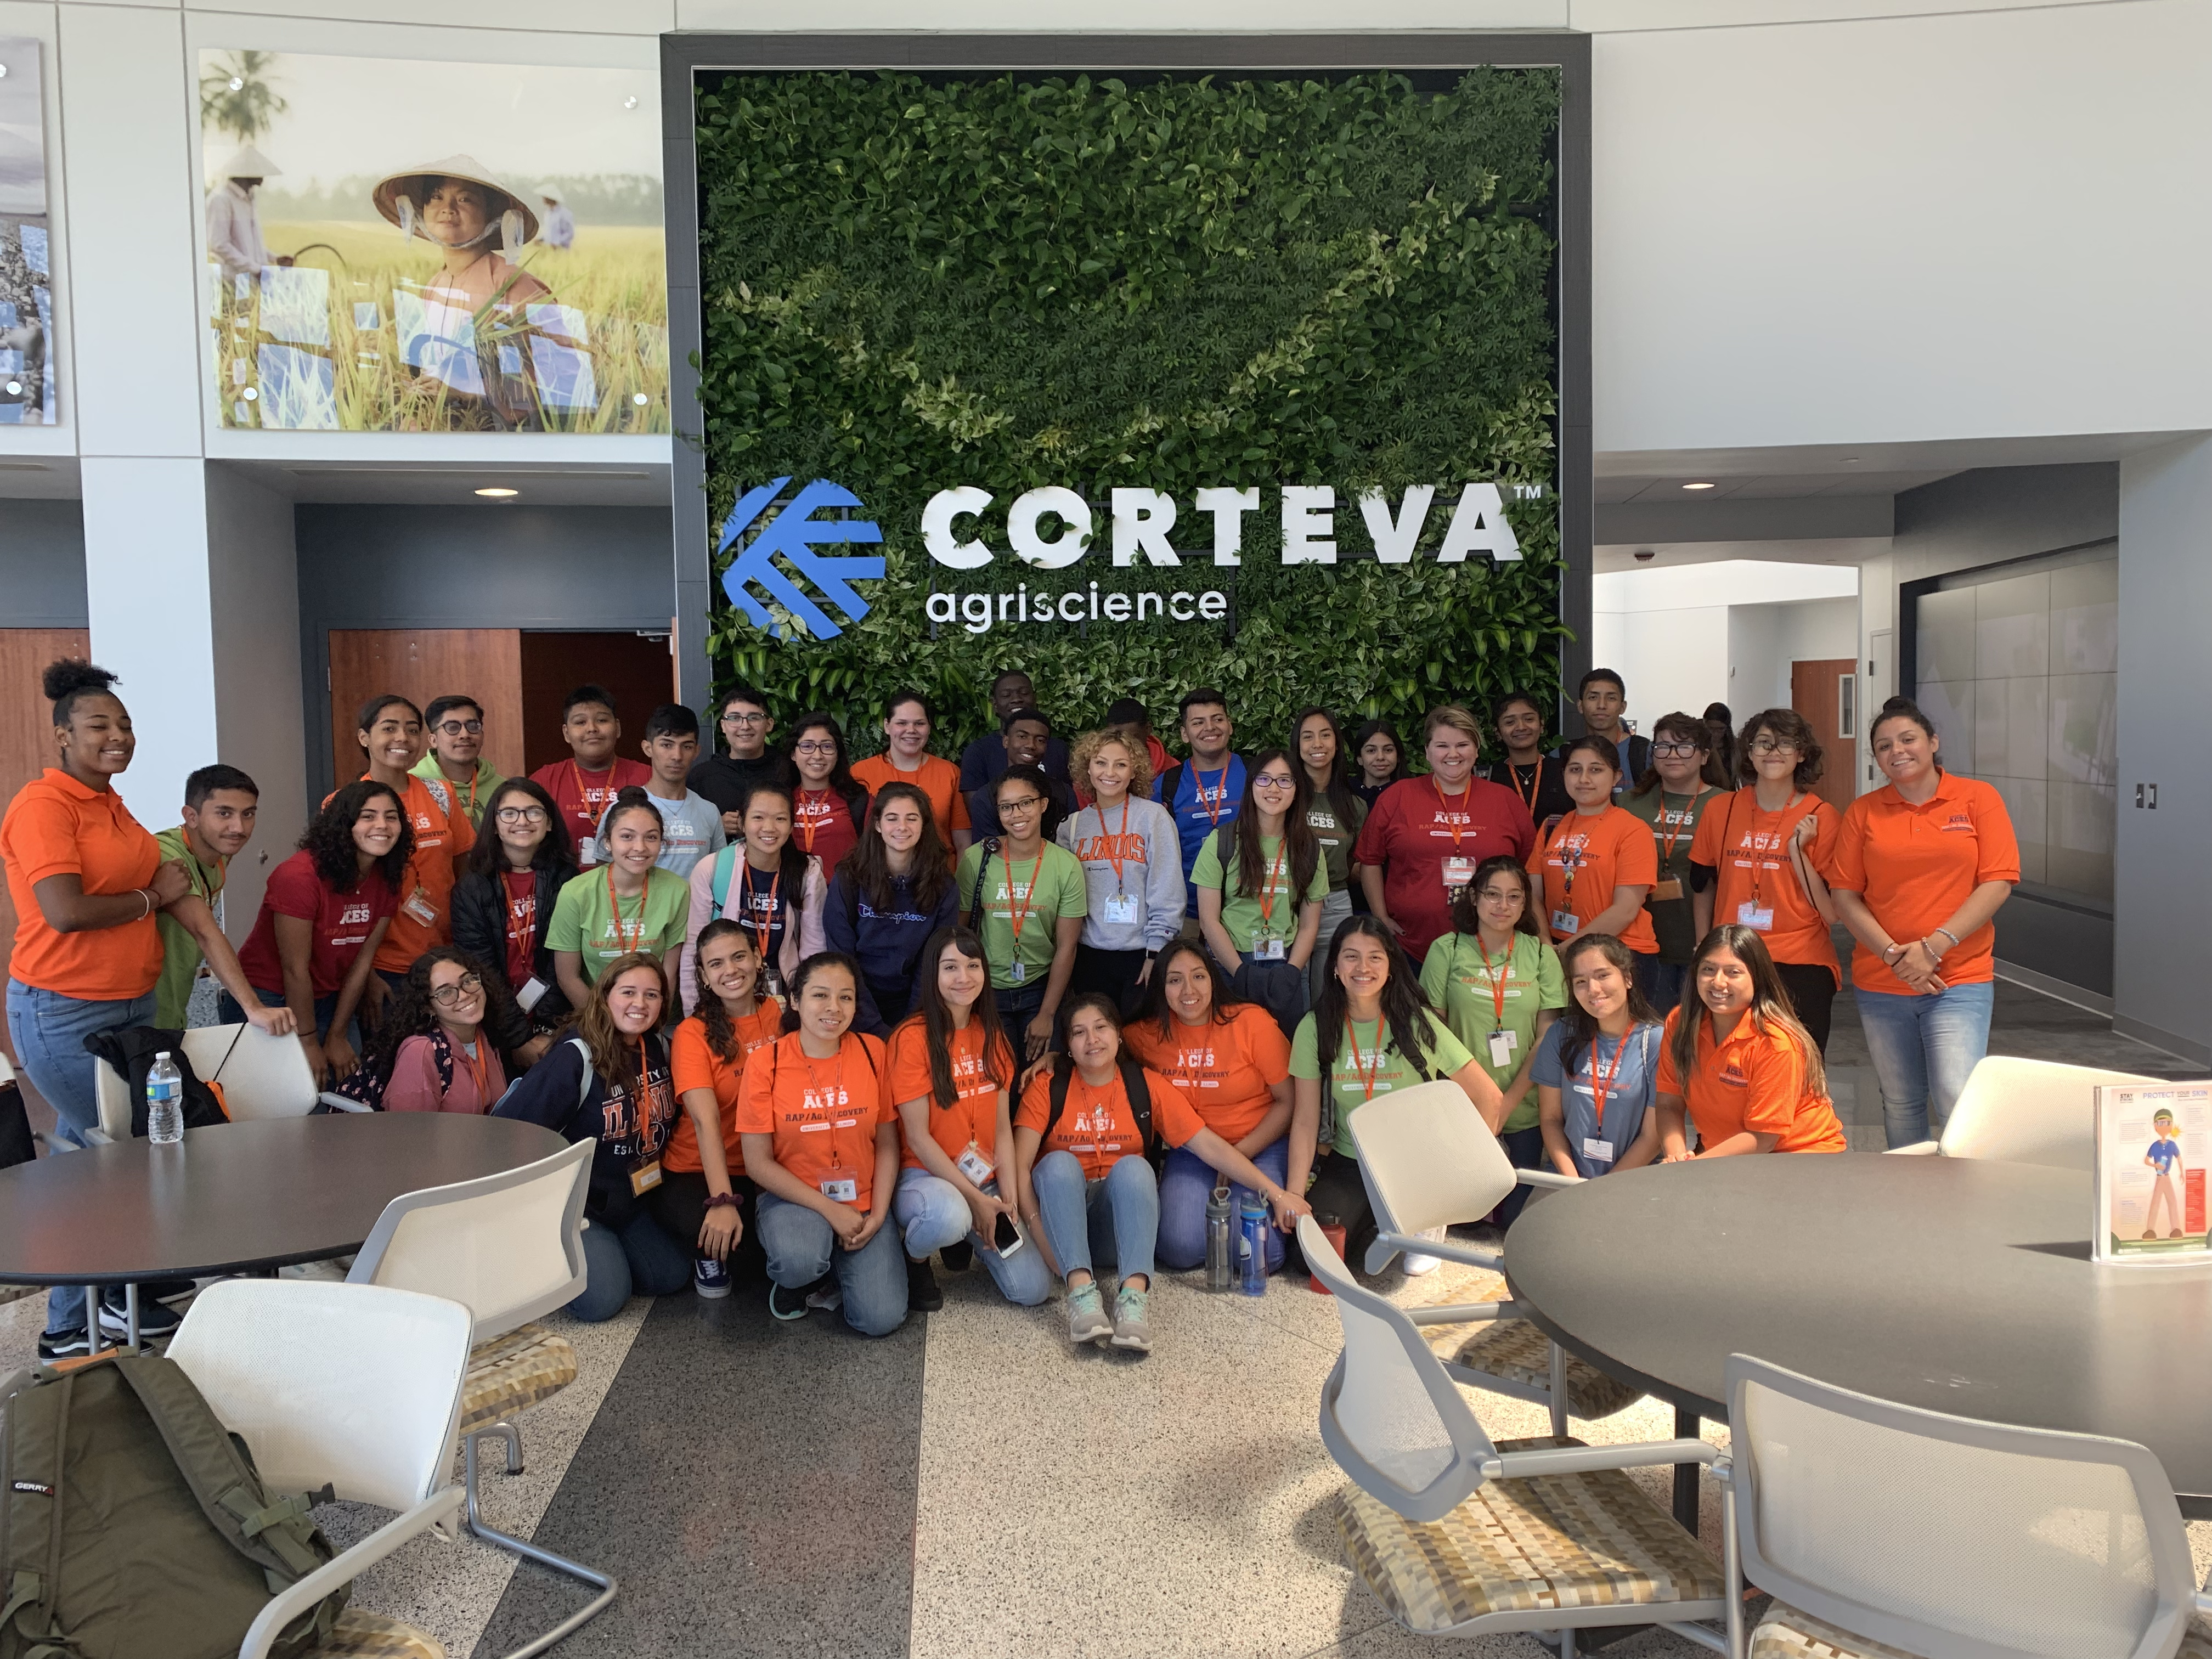 Group of students posing underneath Corteva sign